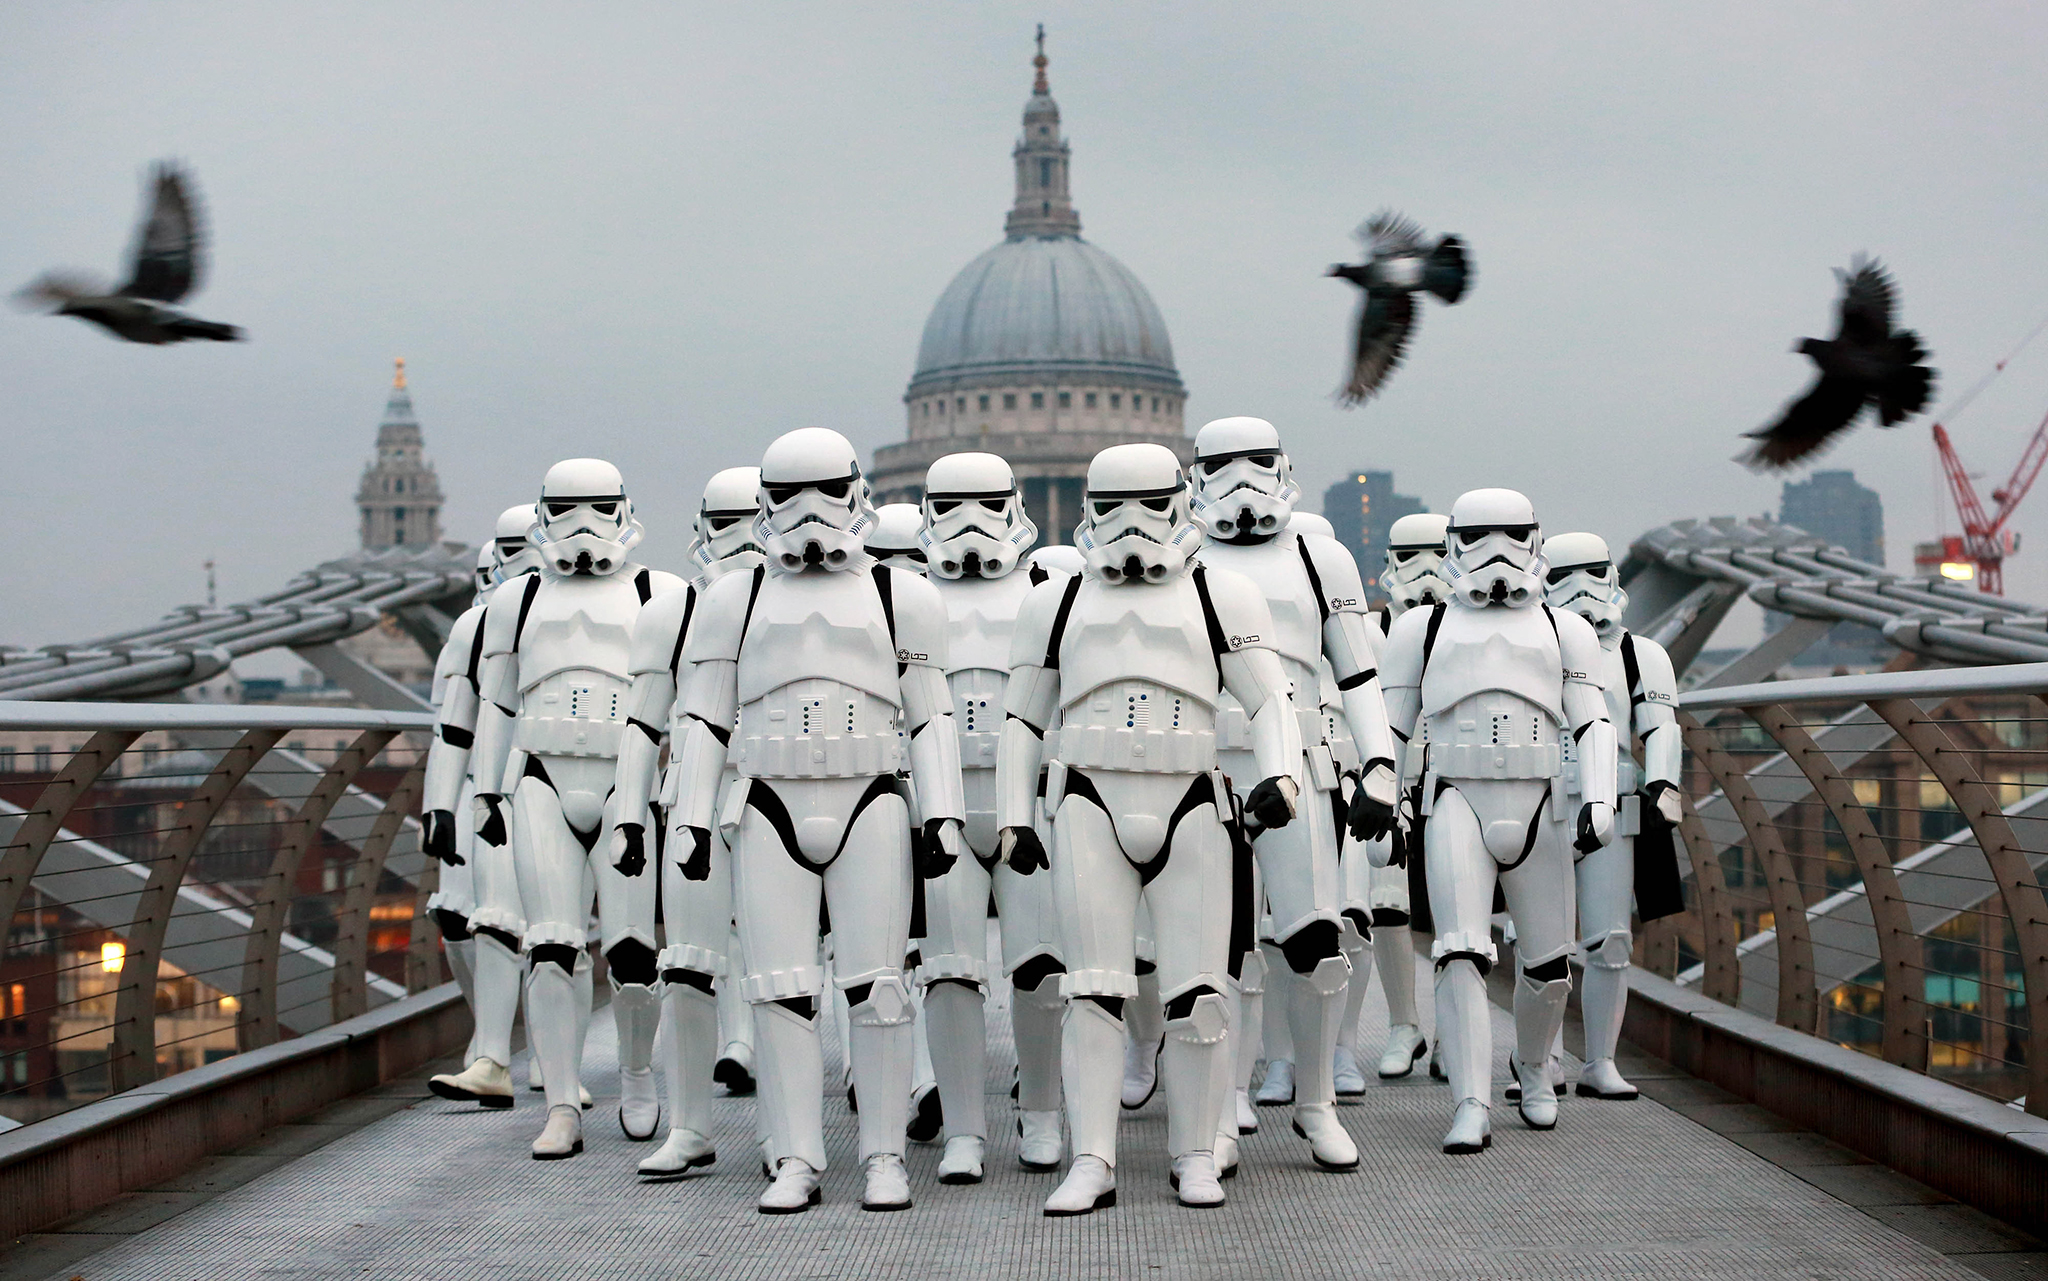 A group of Star Wars fans dressed as Stormtroopers walk across Millennium Bridge in London, to celebrate the launch of Rogue One: A Star Wars Story, which is released nationwide today. PRESS ASSOCIATION Photo. Picture date: Thursday December 15, 2016. Photo credit should read: Matt Alexander/PA Wire